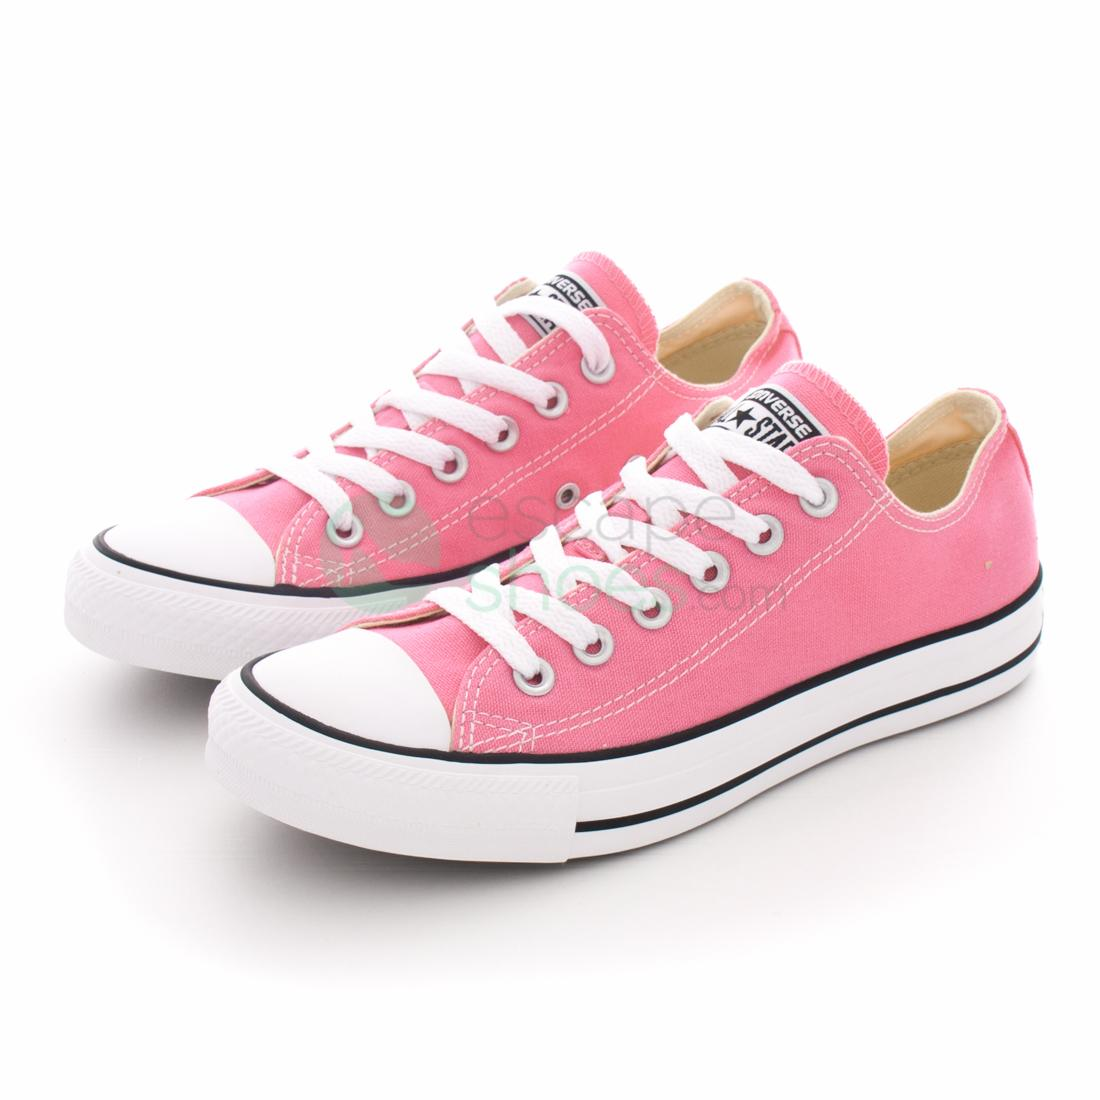 262e90b1ff4ee8 Buy your Sneakers CONVERSE All Star M9007 650 Ox Pink here